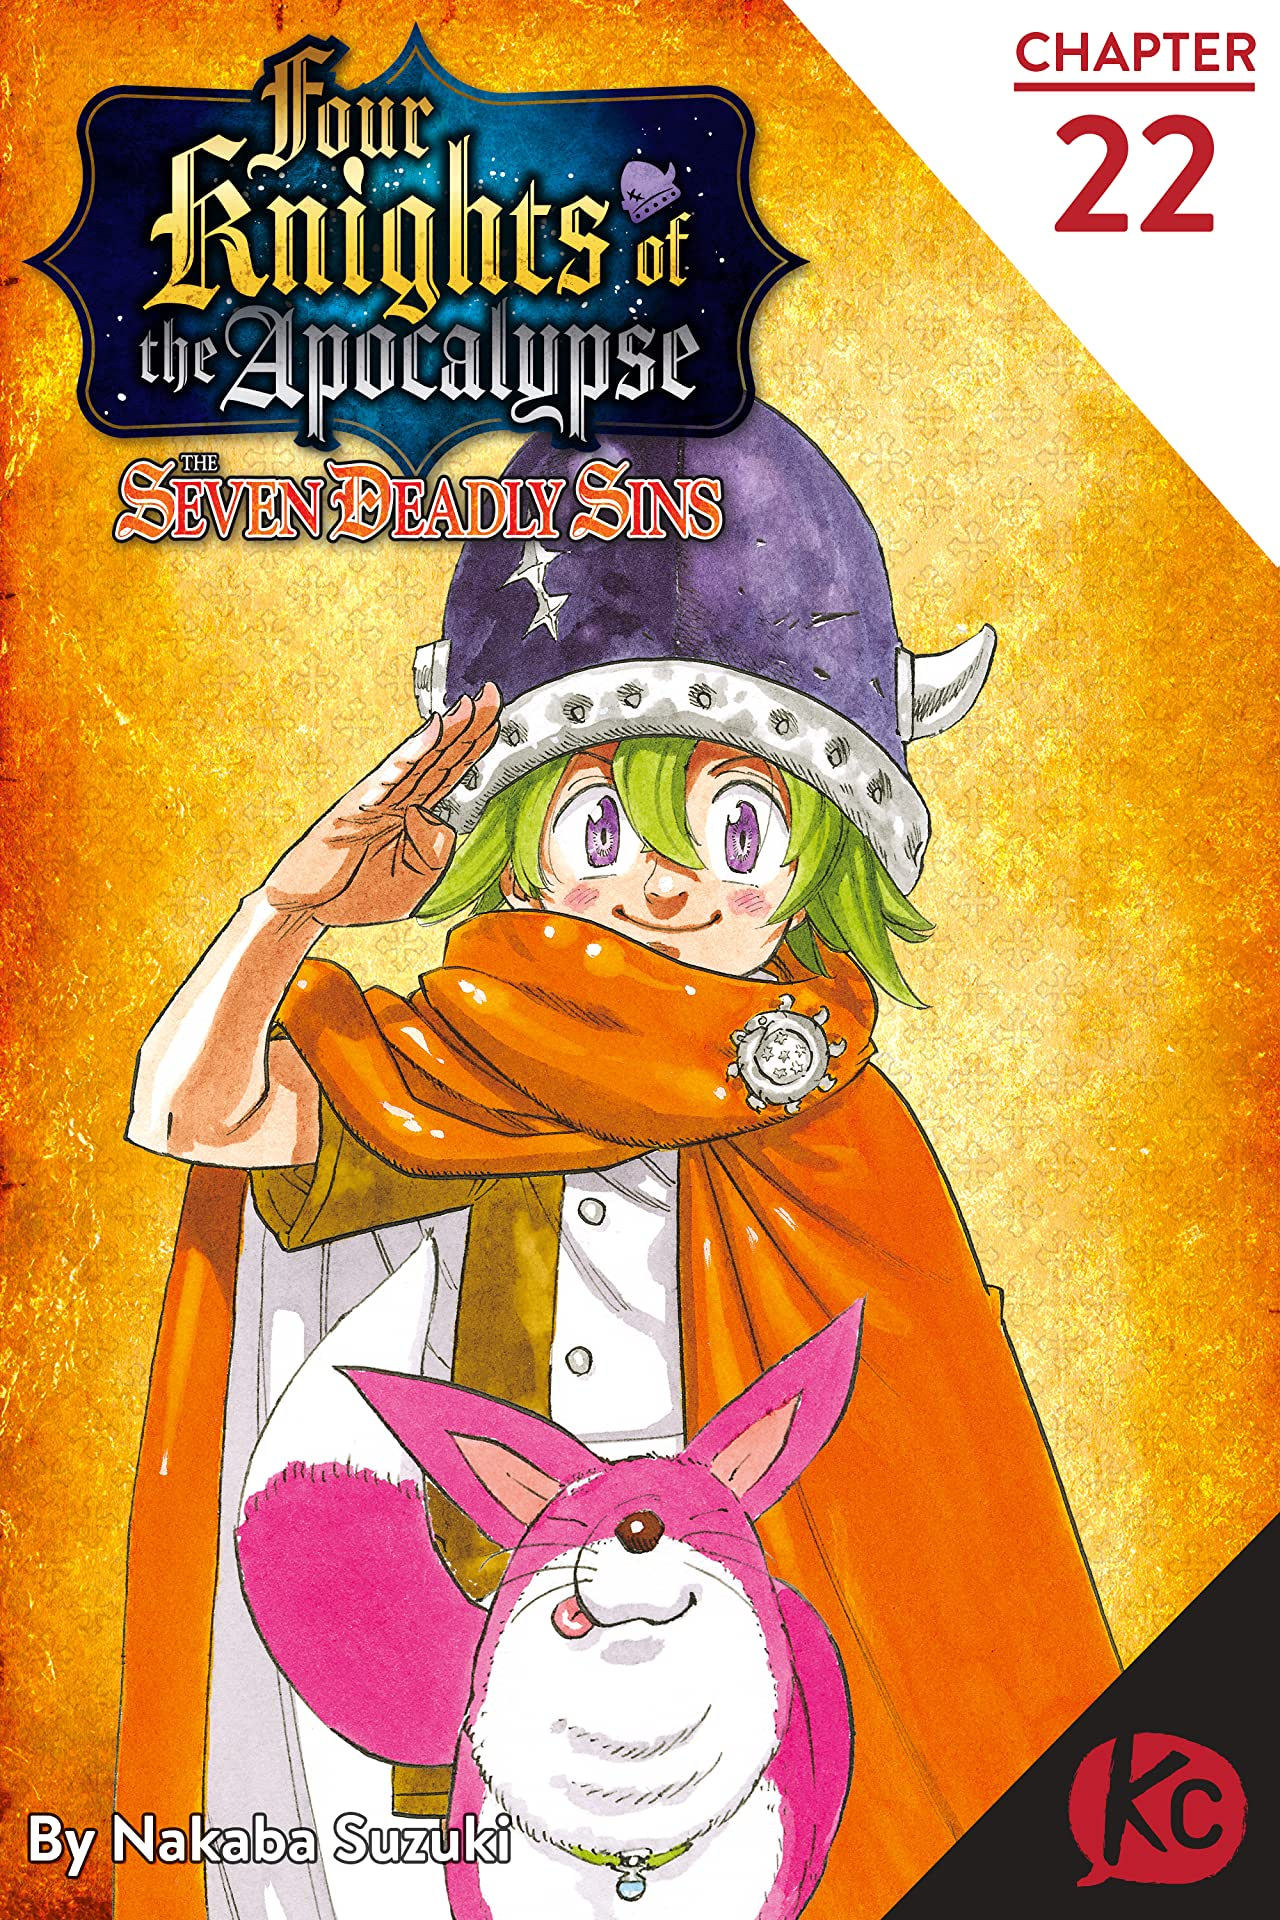 The Seven Deadly Sins: Four Knights of the Apocalypse #22